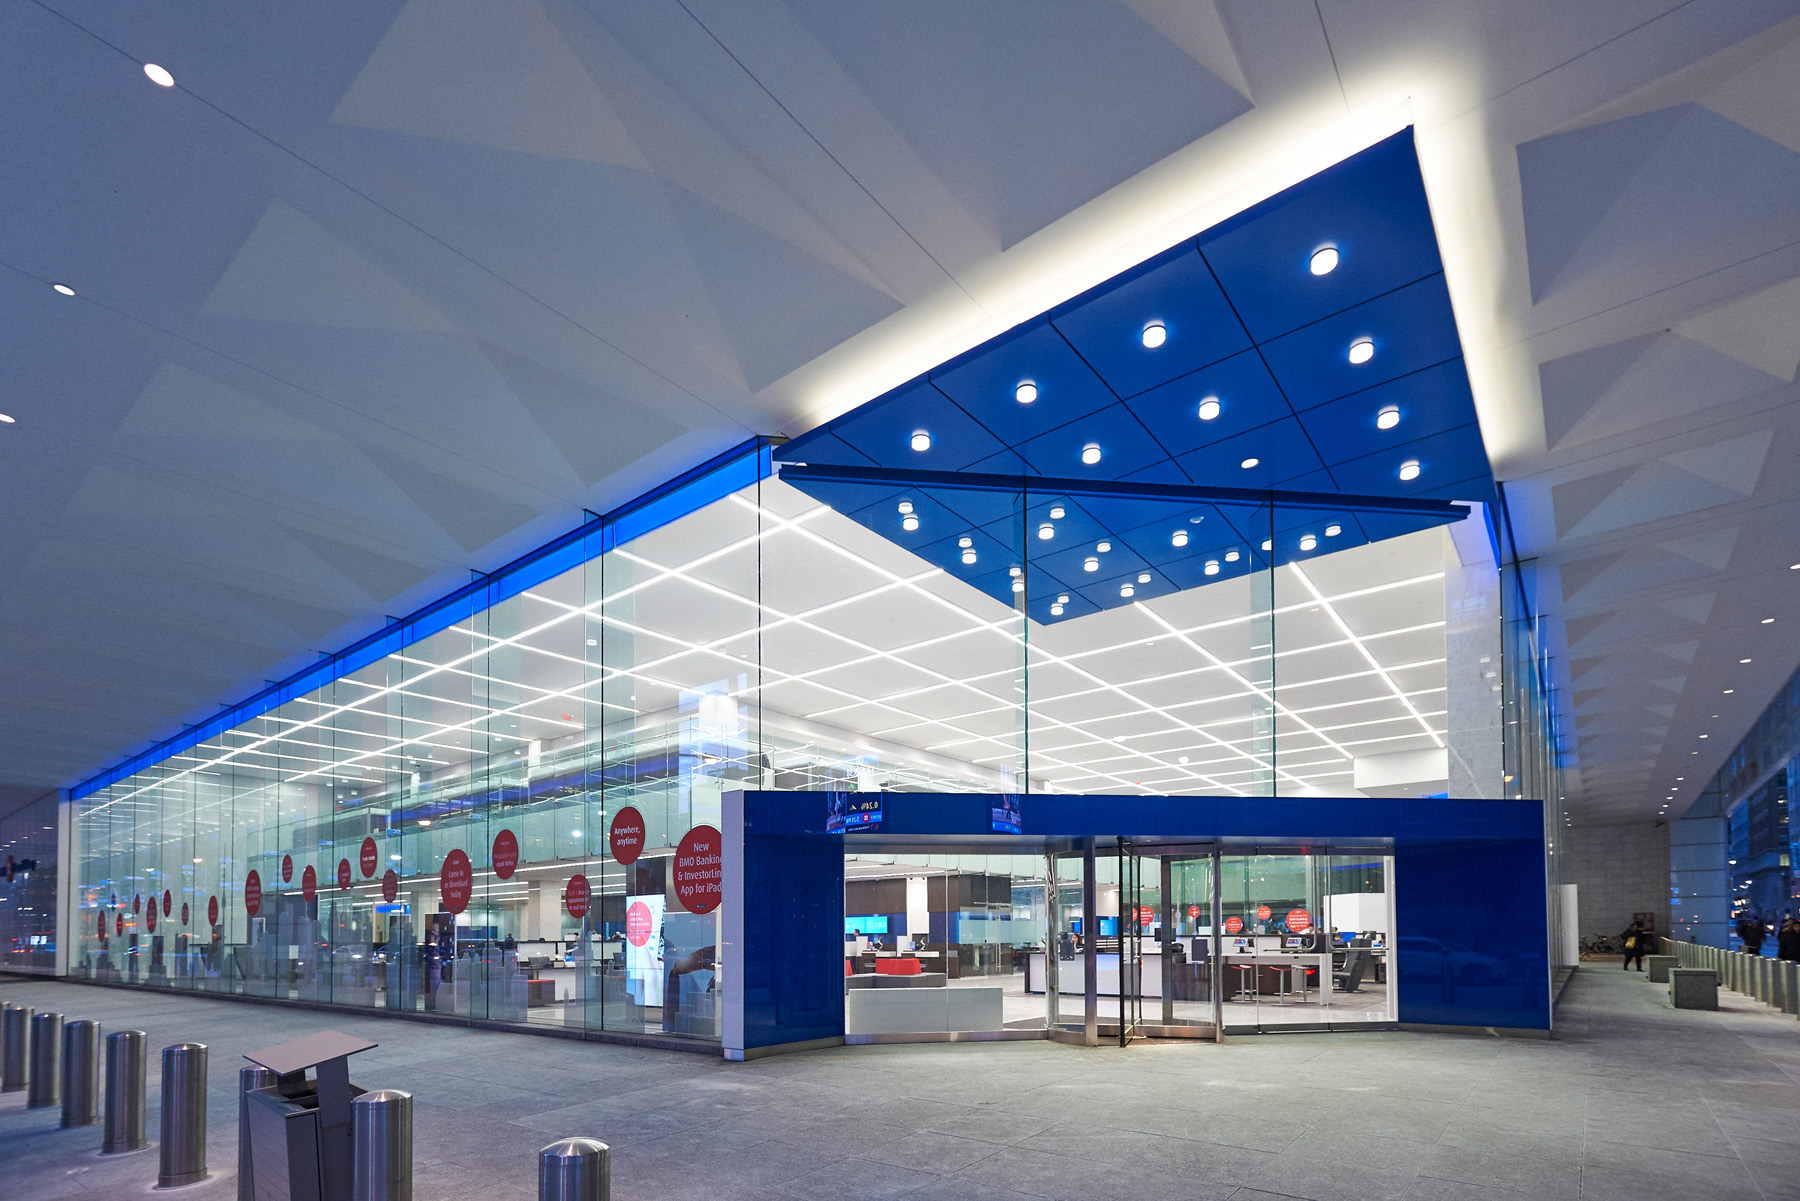 BMO entrance with glass facade and blue accents